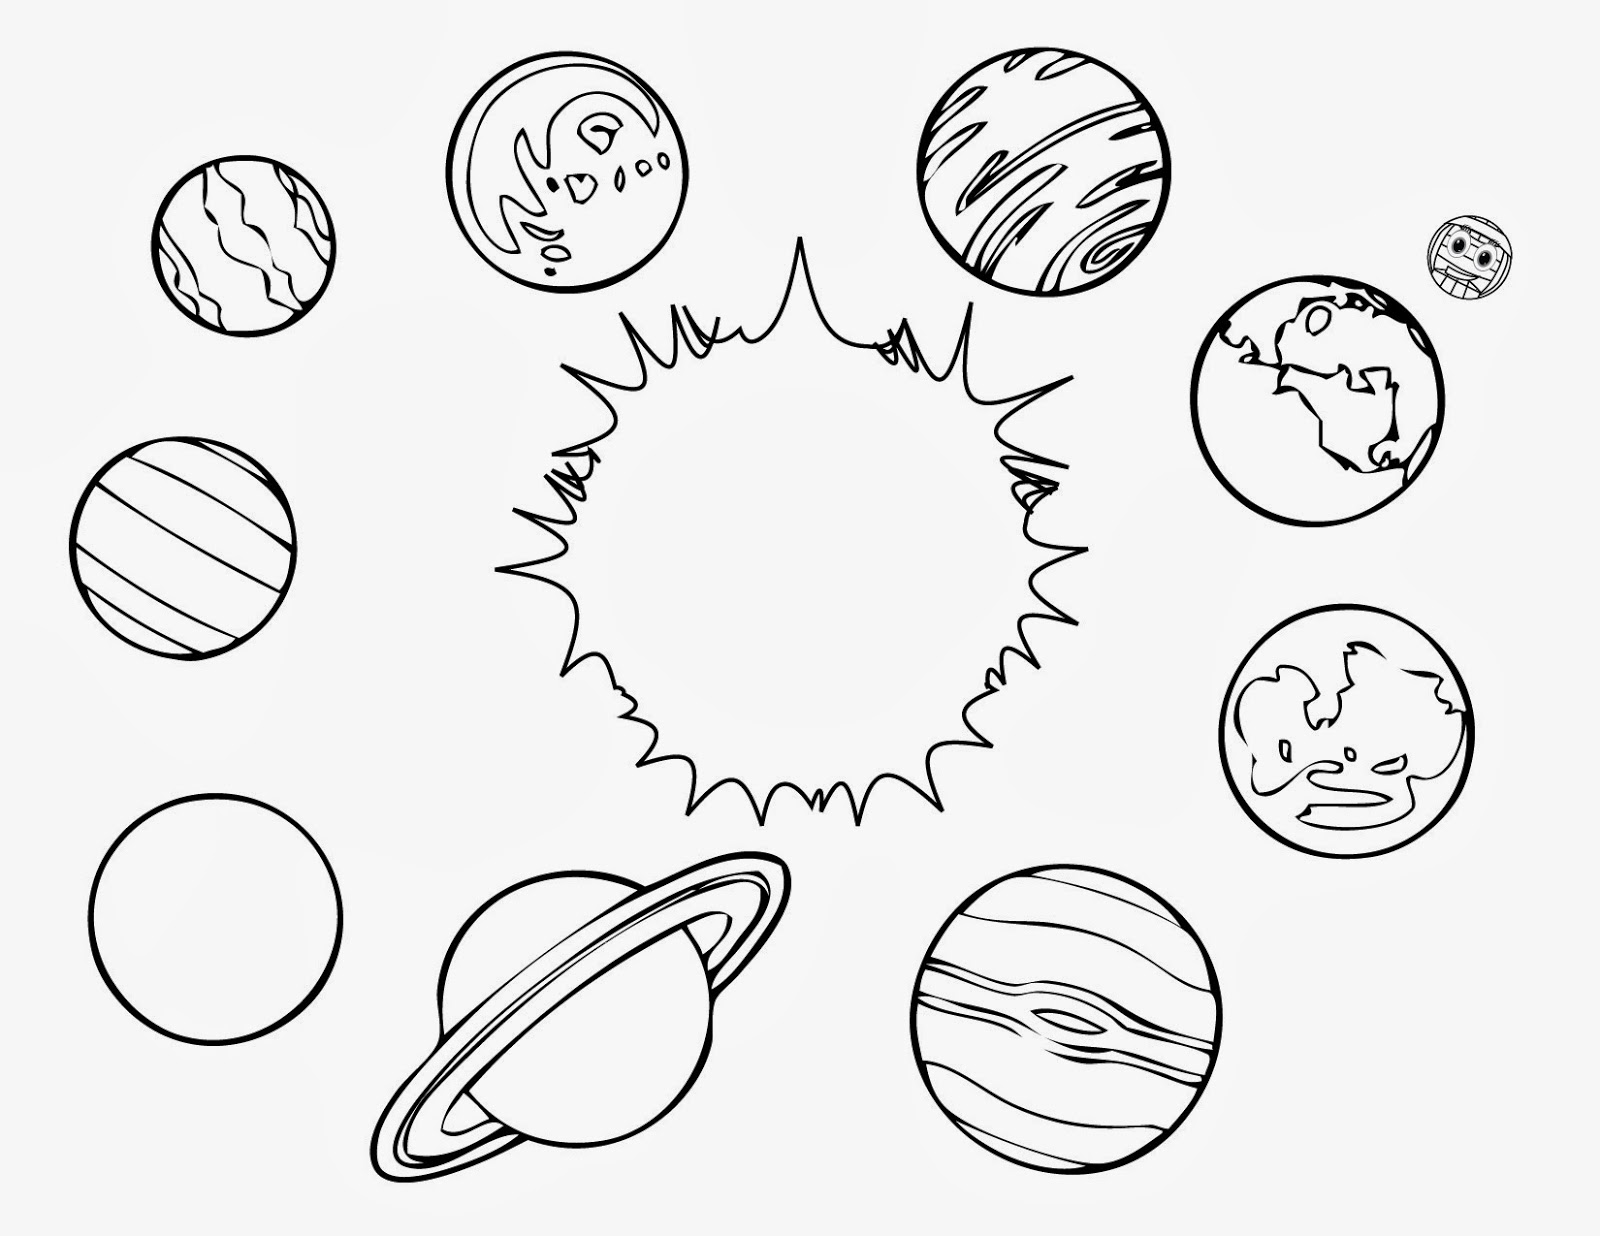 planet colouring sheets planet coloring pages to download and print for free planet colouring sheets